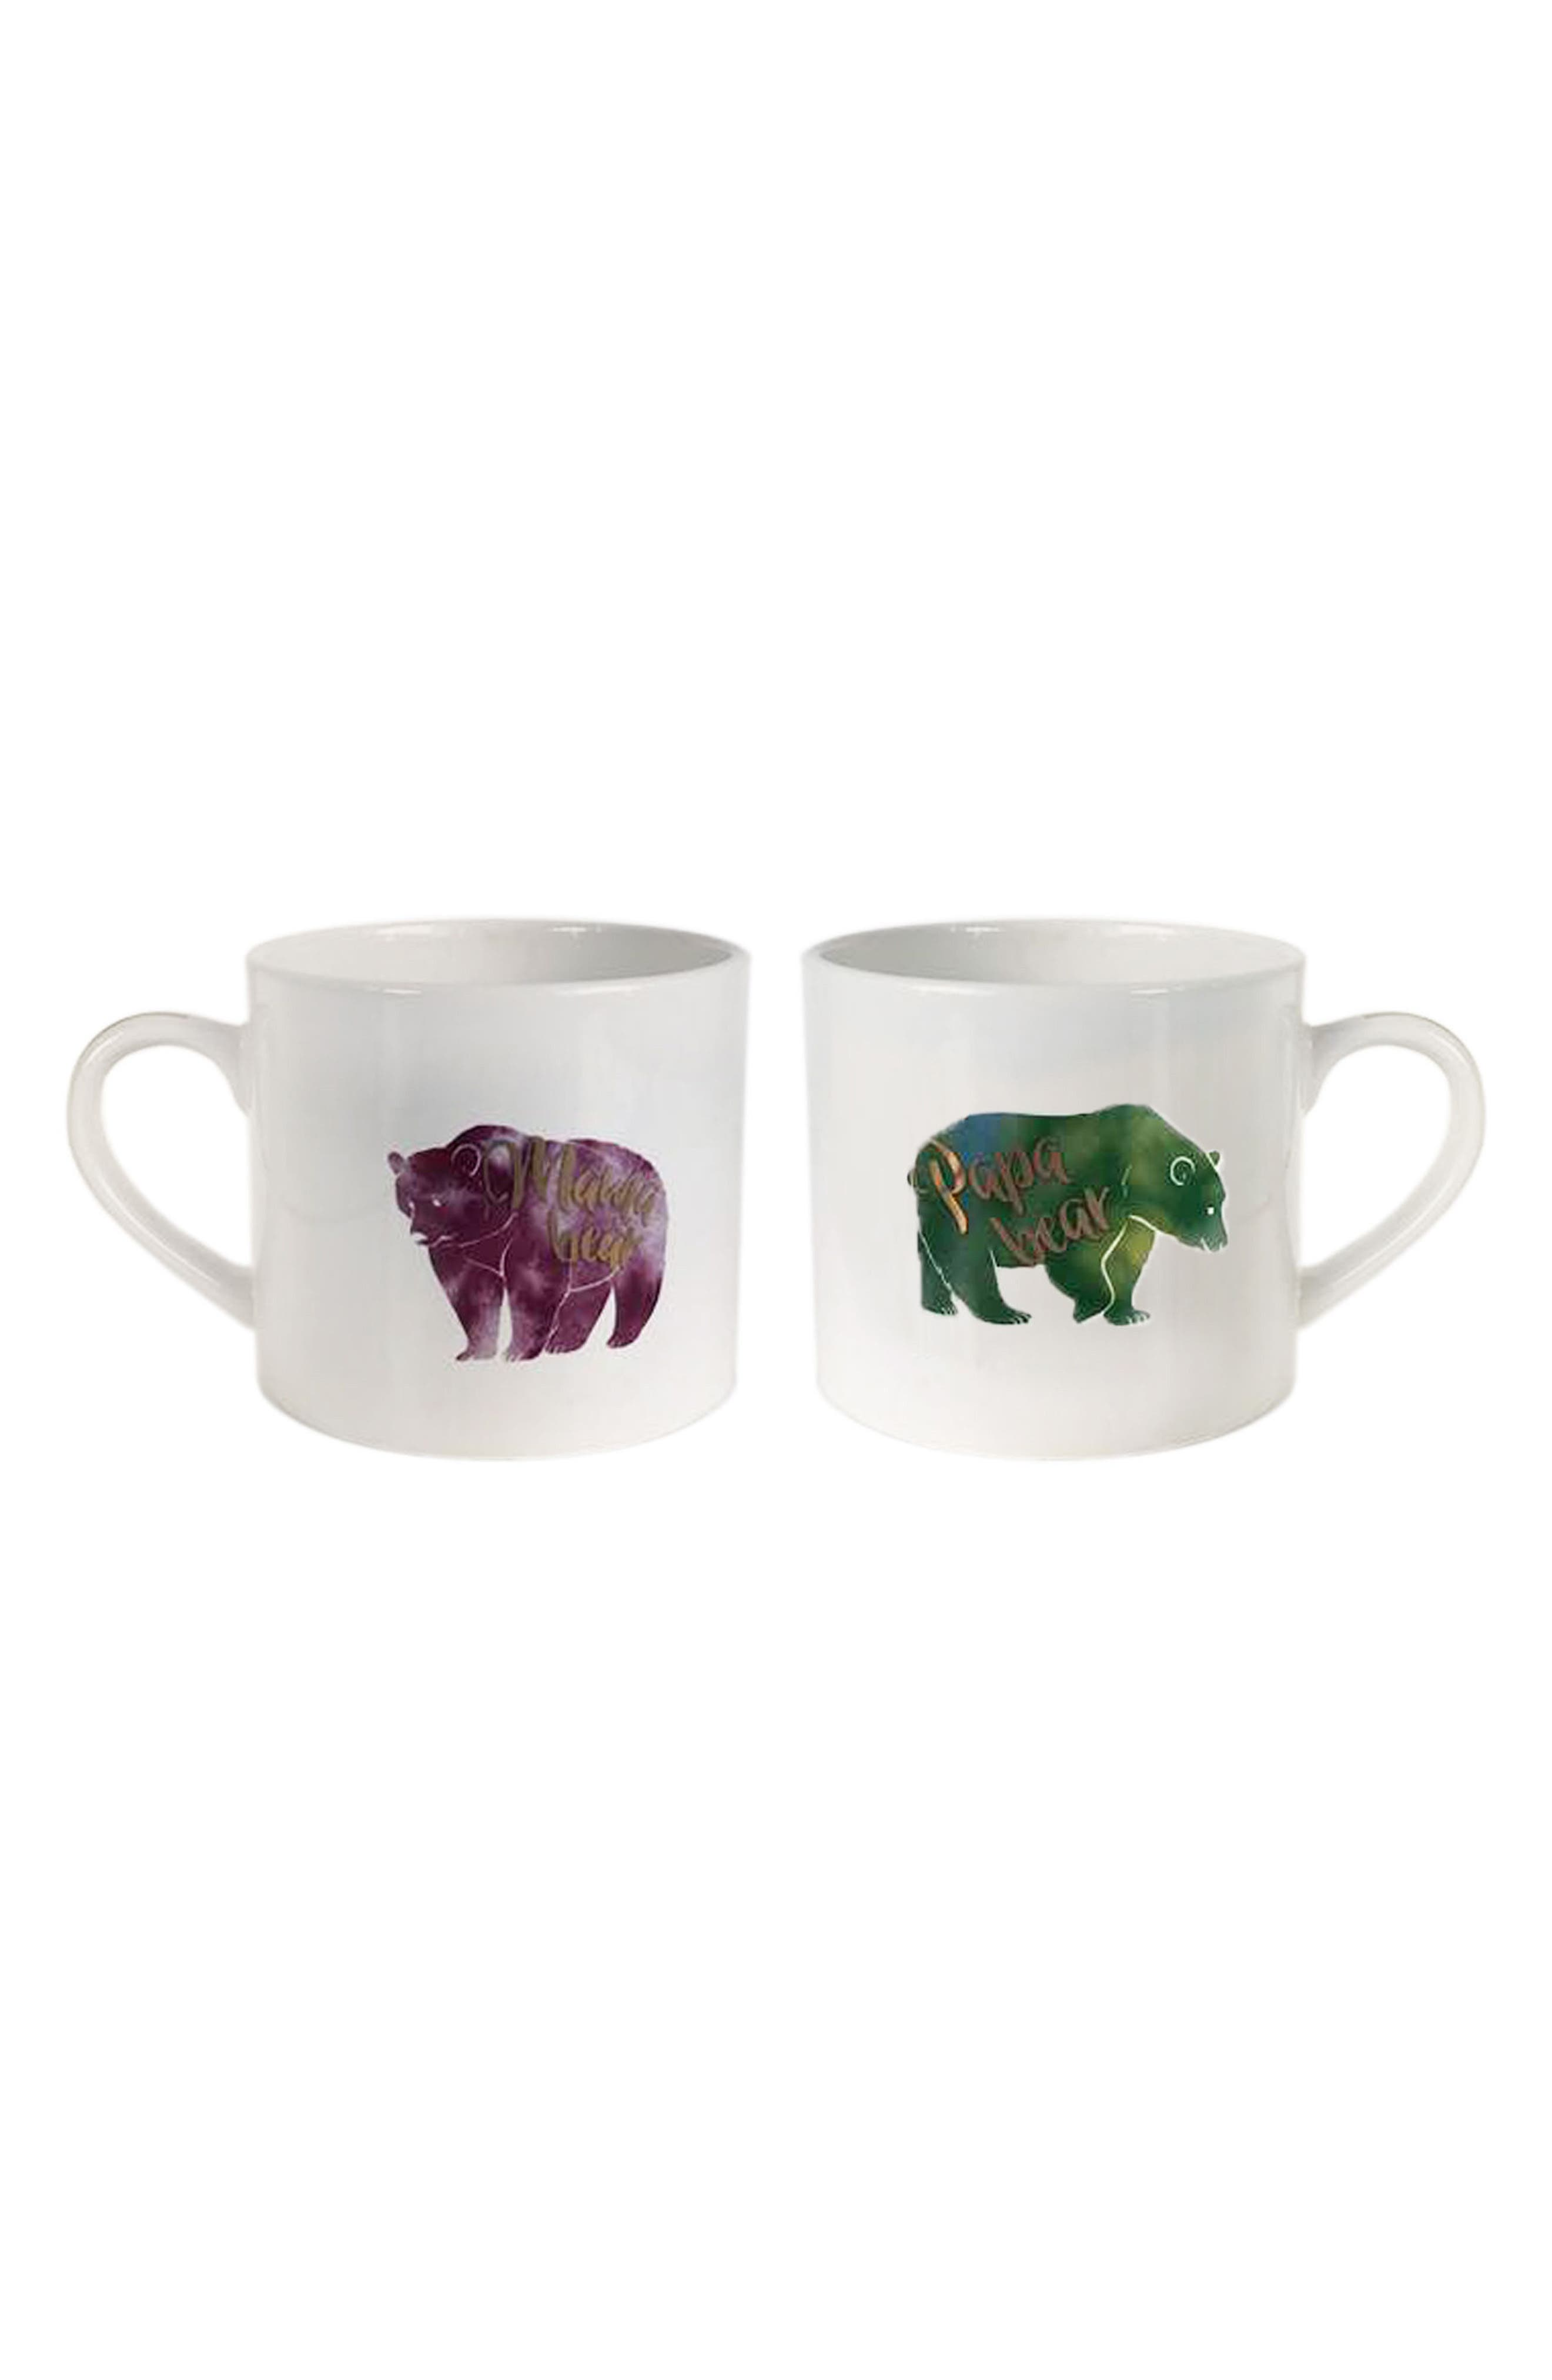 Papa Bear & Mama Bear Set of 2 Mugs,                             Main thumbnail 1, color,                             100